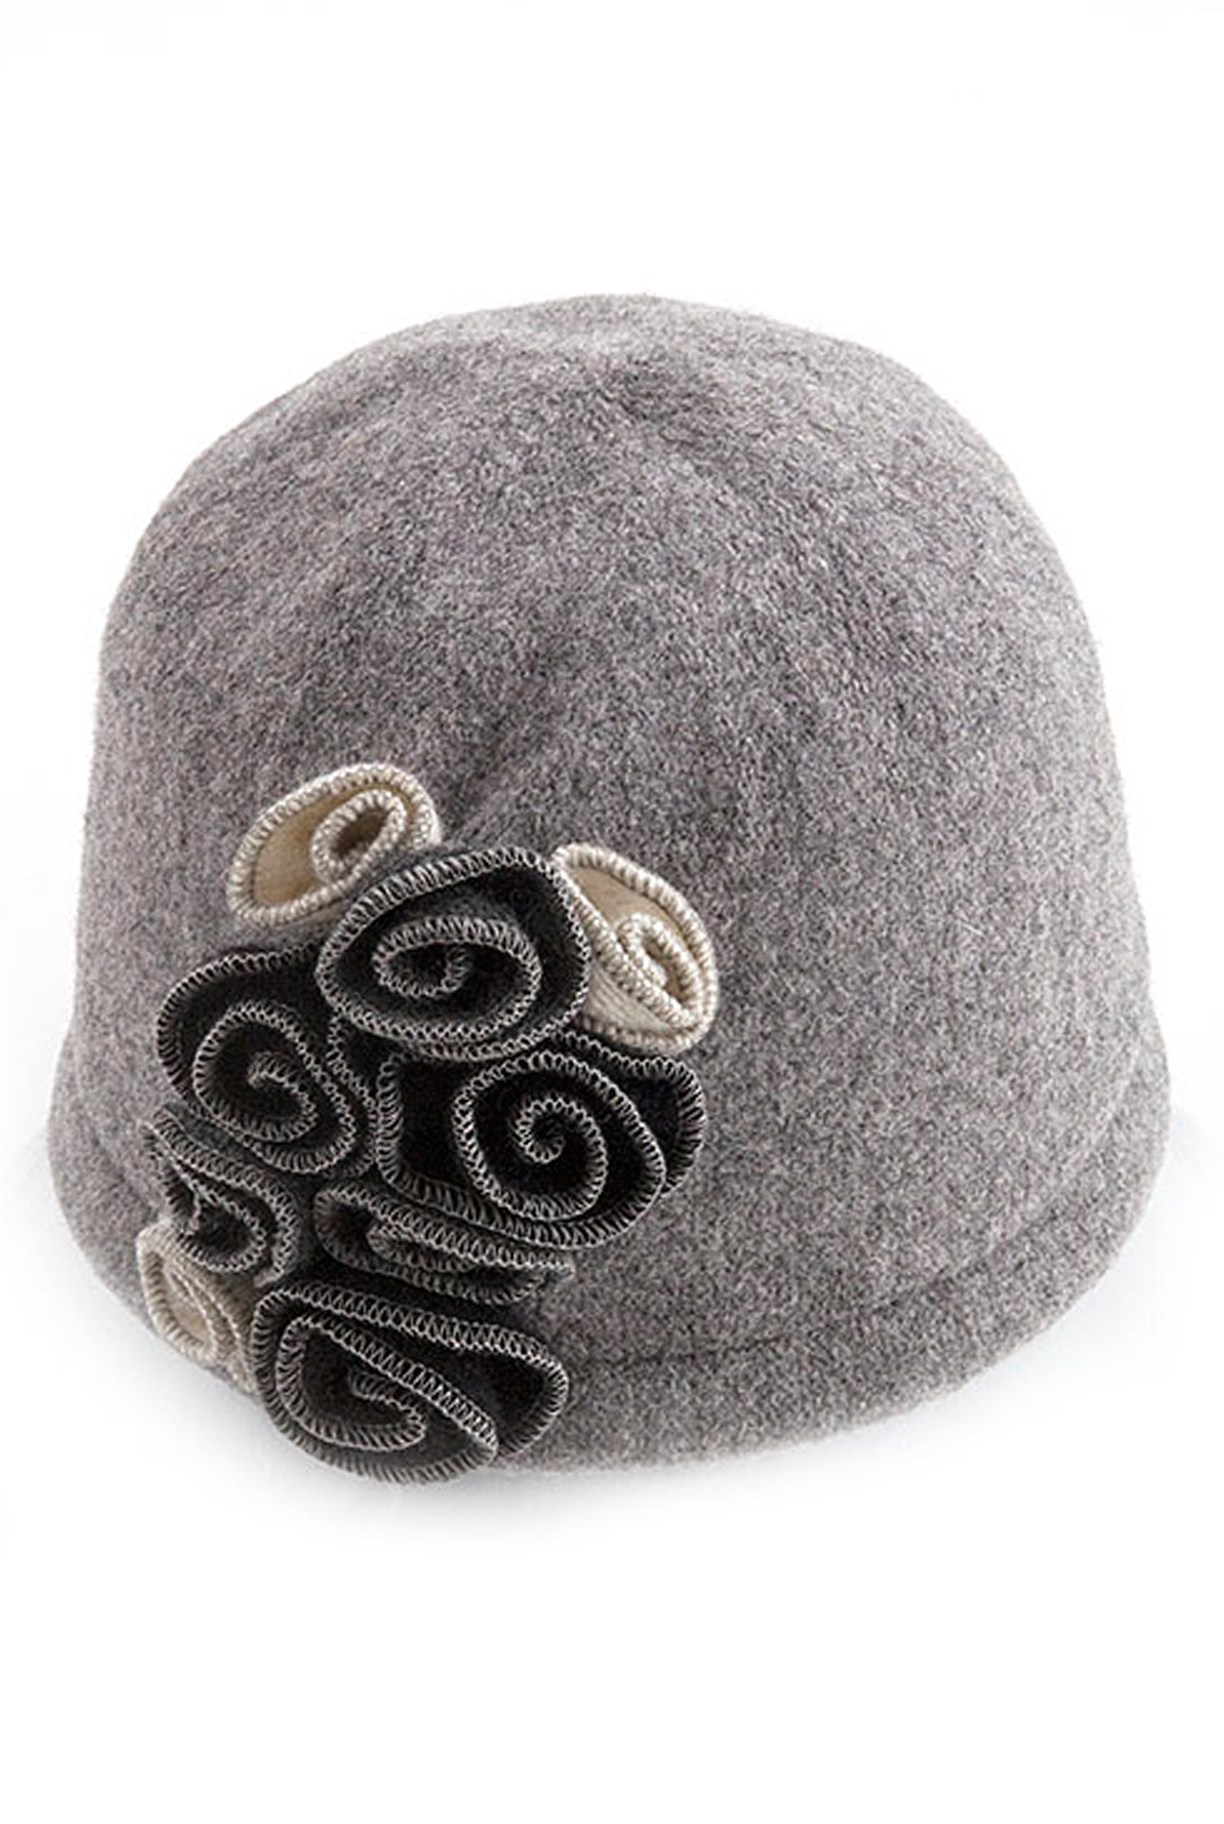 c0bfe952d14 Coco Chanel Hat - This Coco Chanel inspired hat has a classic 1920 s style  with complimentary rose accents on the side. Wear it with a flapper  inspired ...